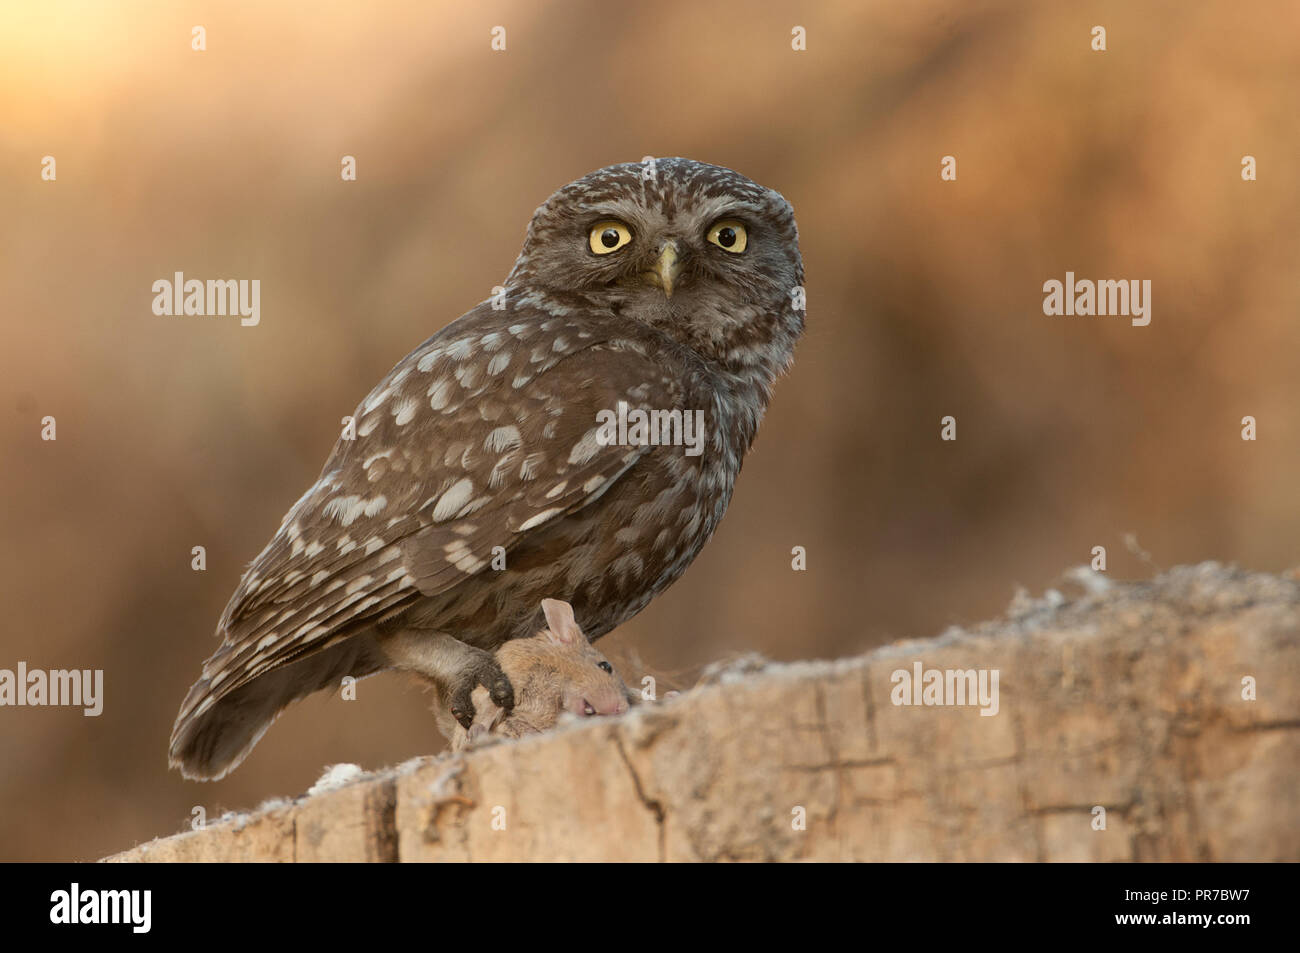 Image of: Pixabay The Little Owl Nocturnal Birds Of Prey Athene Noctua Perched On Branch With Mouse Recently Hunted Alamy The Little Owl Nocturnal Birds Of Prey Athene Noctua Perched On